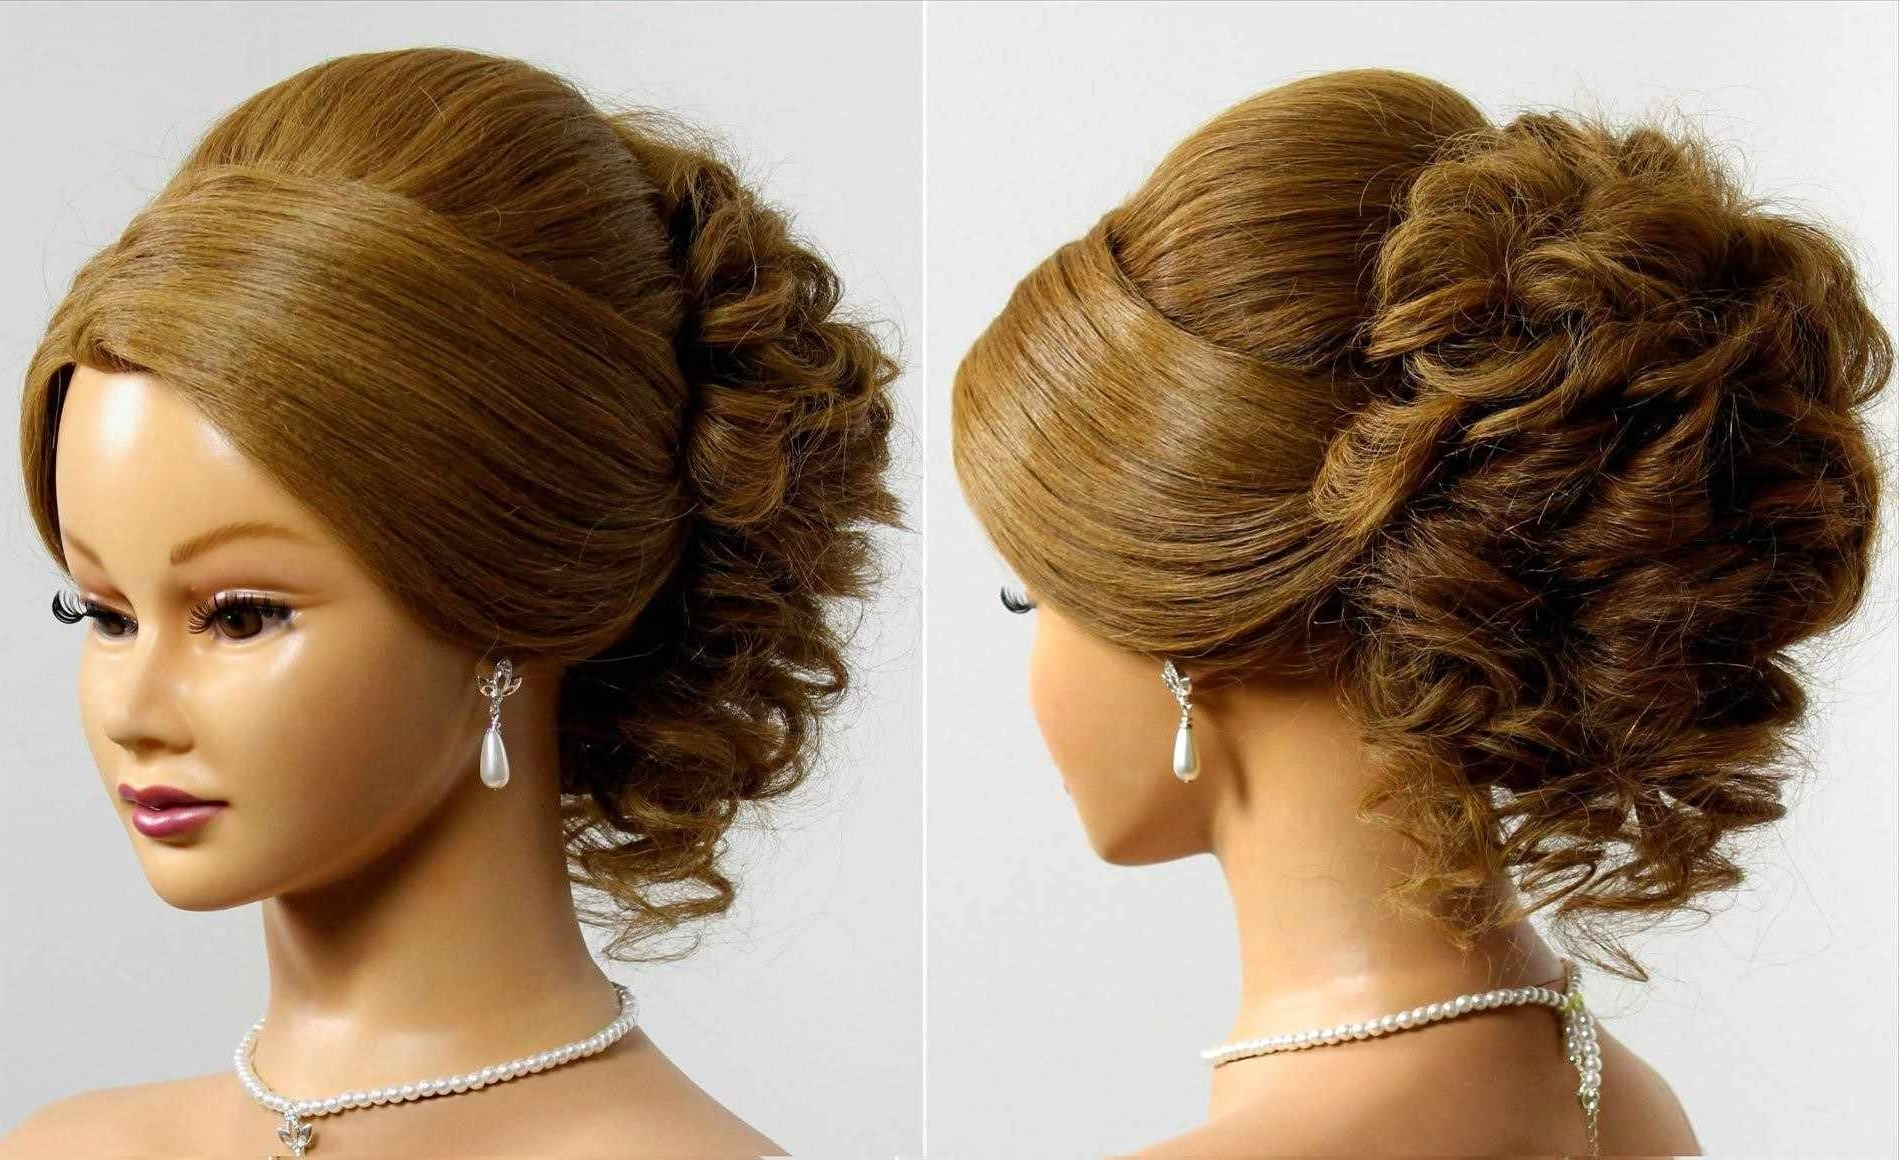 Bride Updo Hairstyles | Justswimfl In Bride Updo Hairstyles (View 9 of 15)